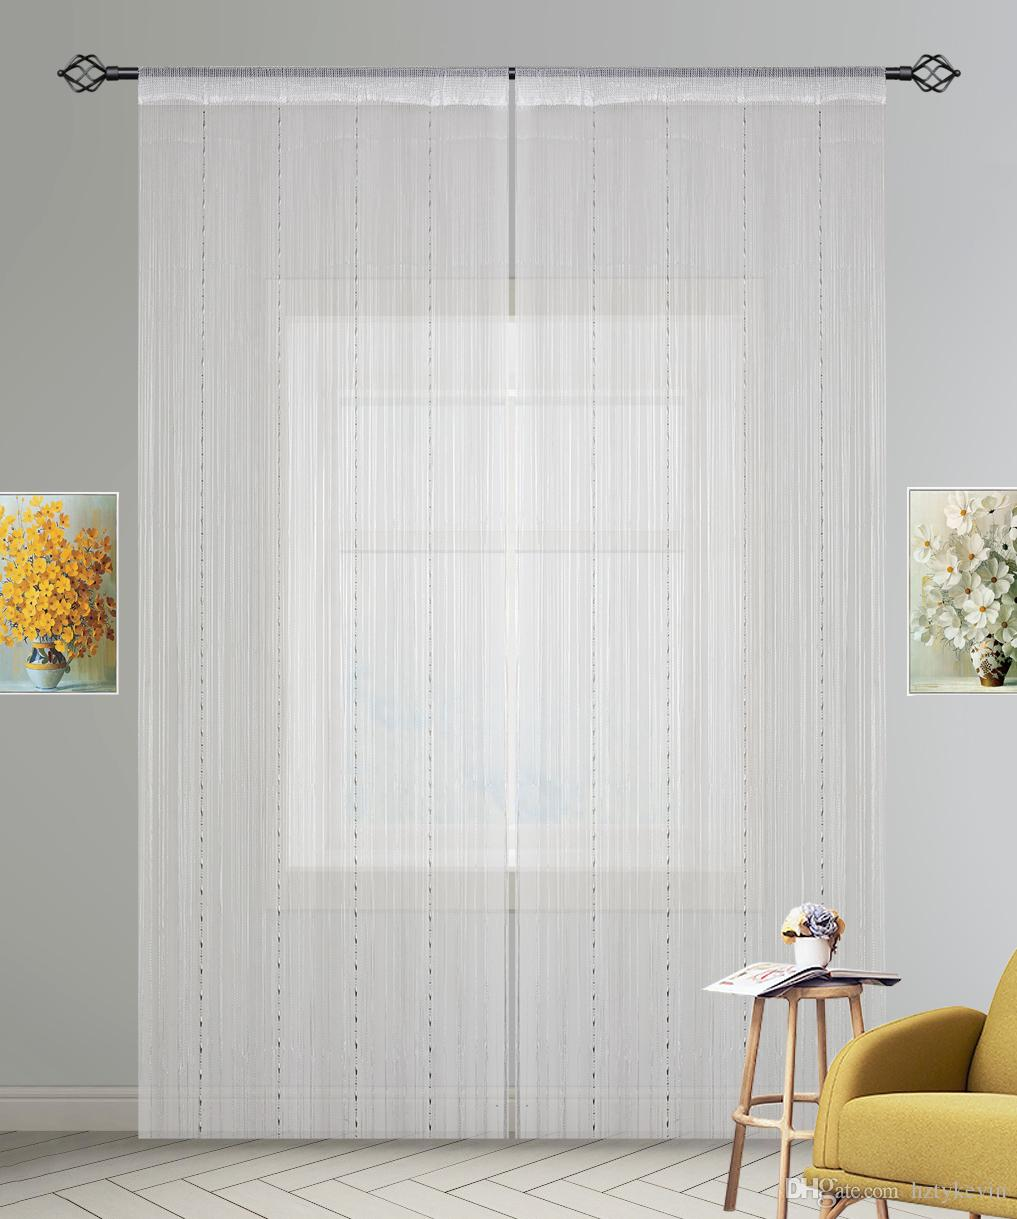 2018 White Beaded String Curtain With Plastic Beads Chain Door